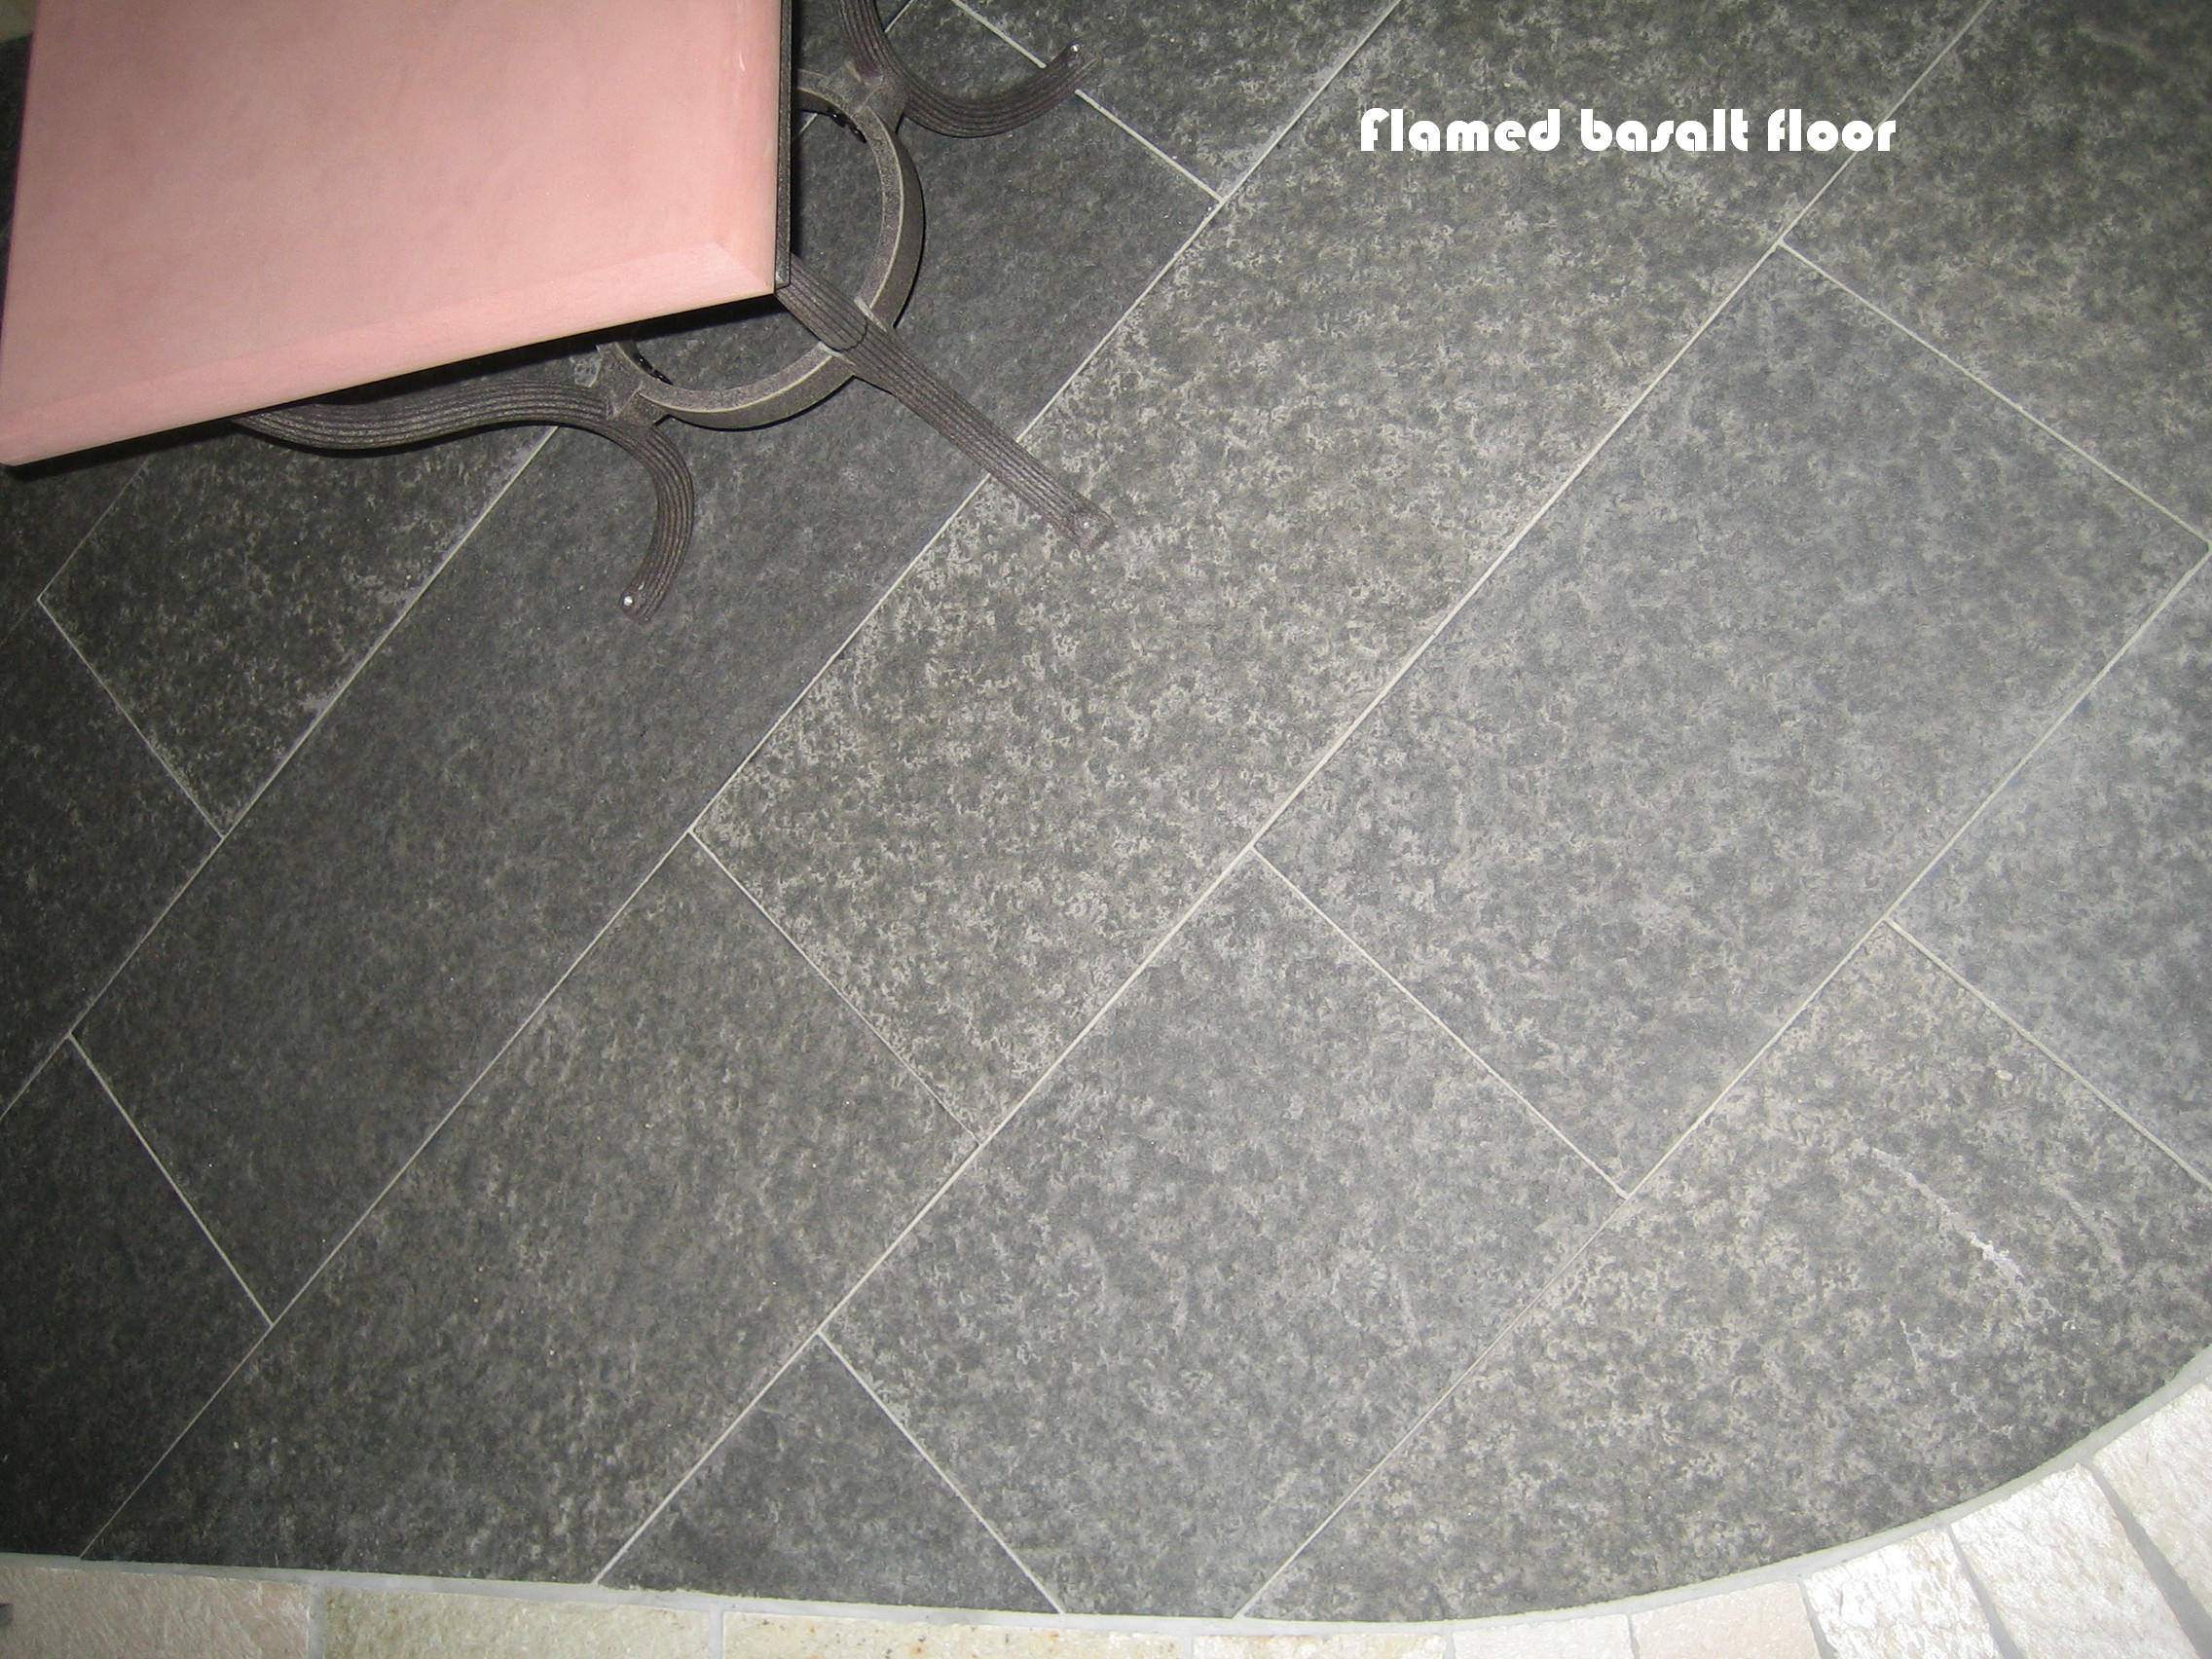 16. We have beautiful flamed basalt tiles, steps or slabs. Extremely hard surface